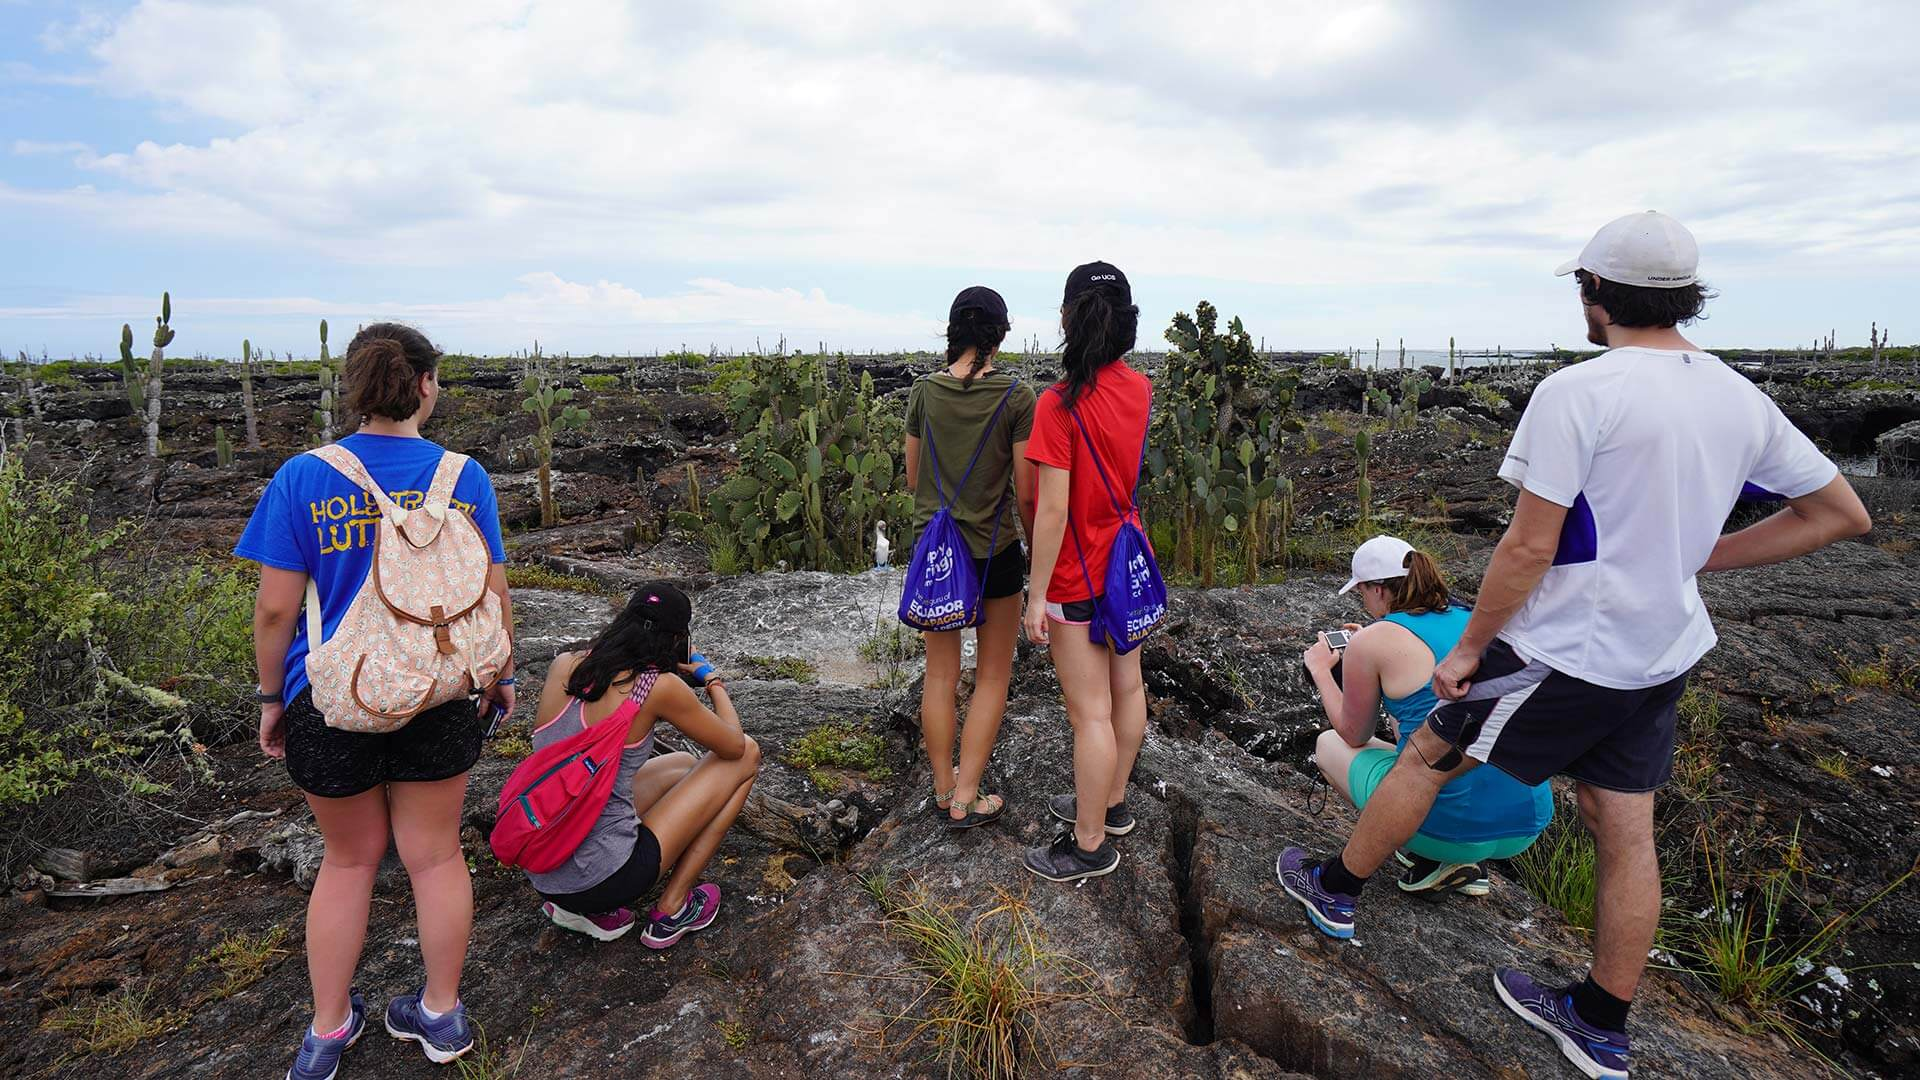 galapagos island hopping land tour group trekking